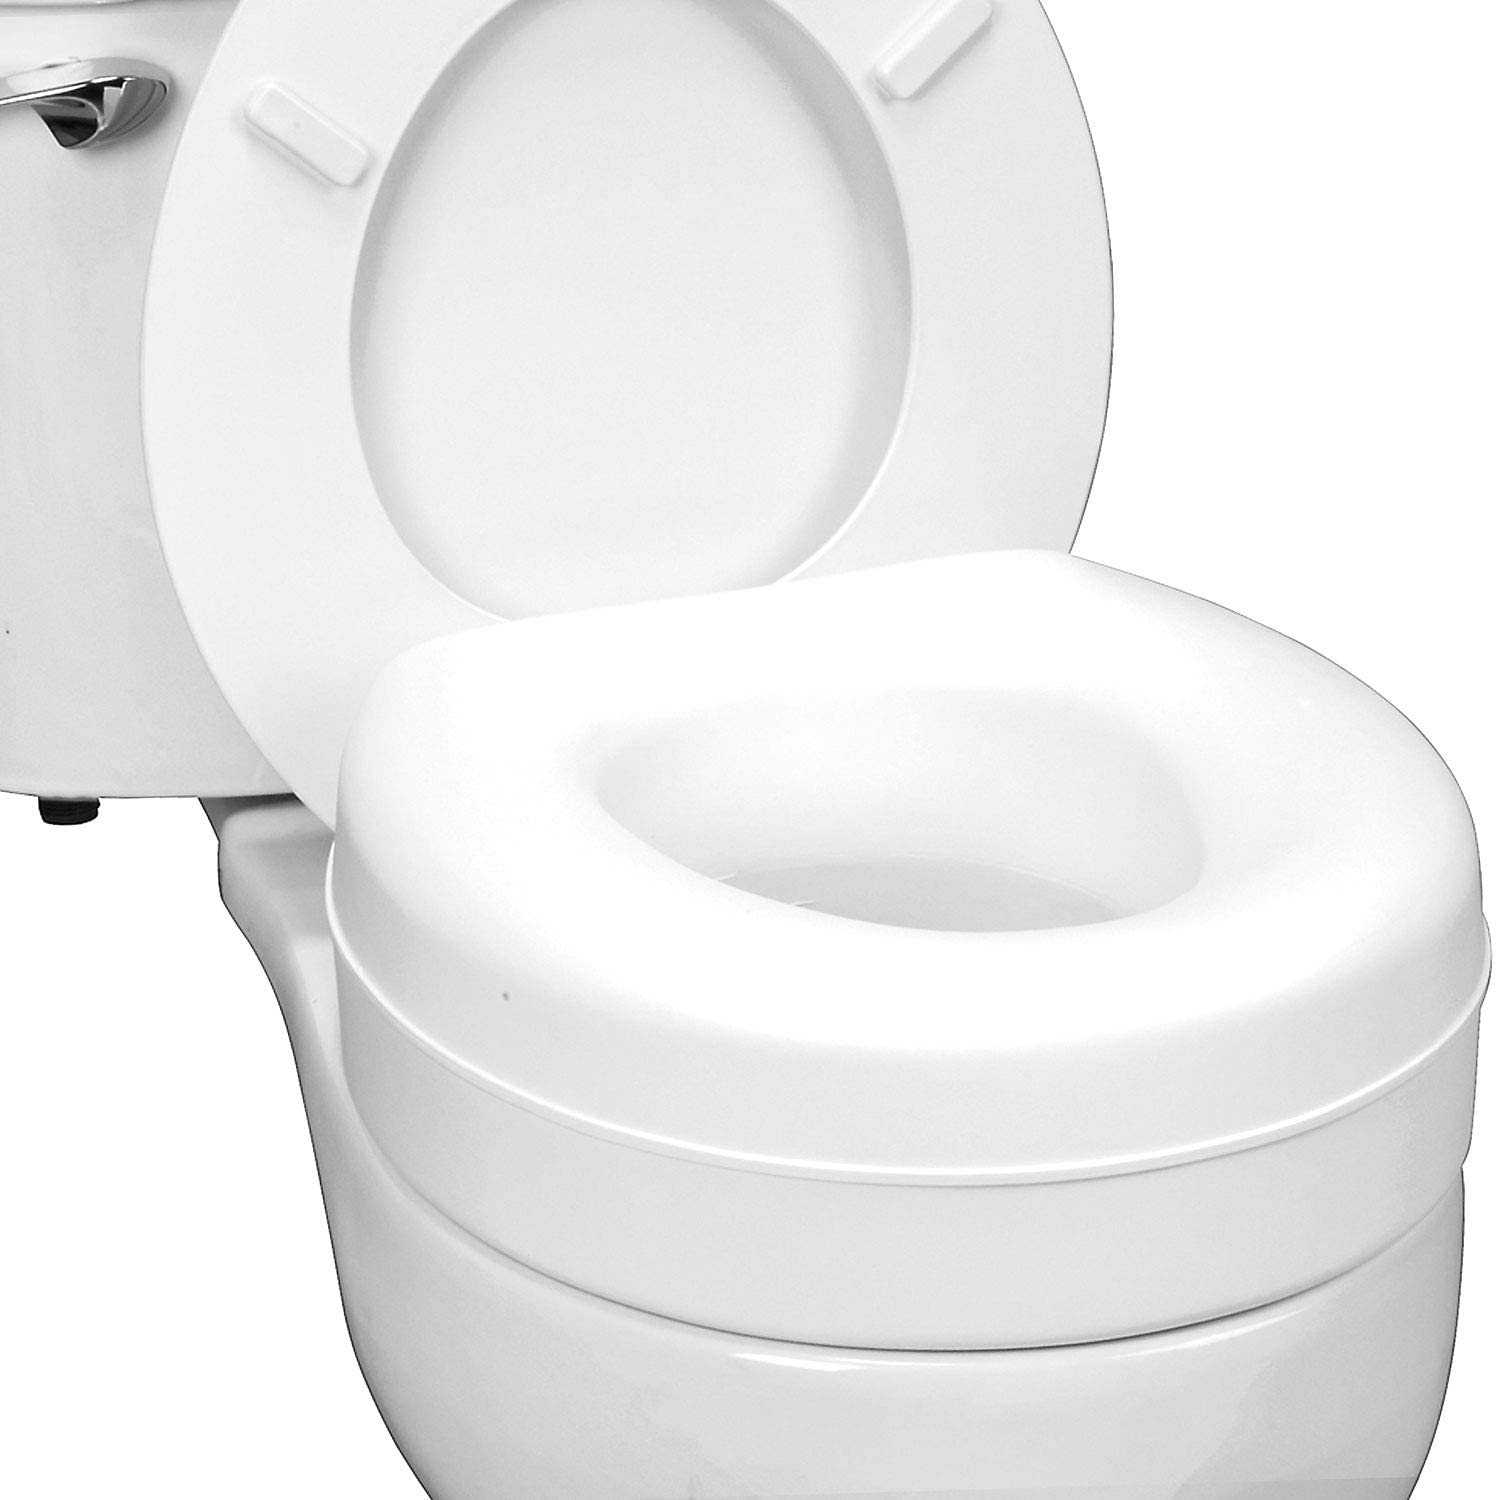 Amazon.com: HealthSmart Portable Elevated Raised Toilet Seat Riser that fits Most Standard Seats, White: Health & Personal Care